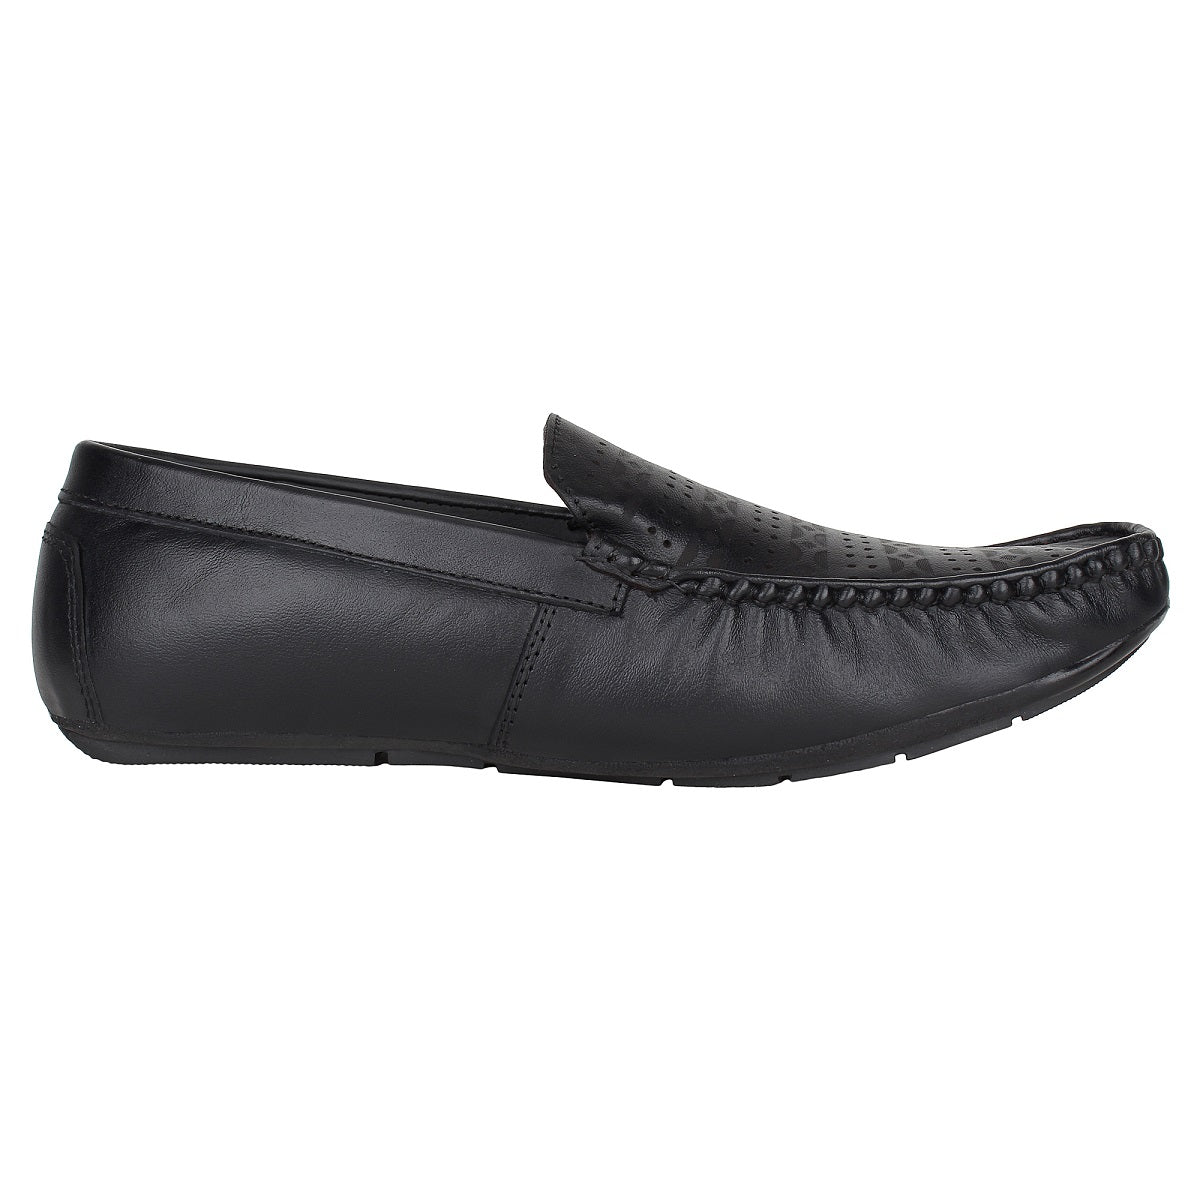 SeeandWear Leather Loafers for Men - SeeandWear